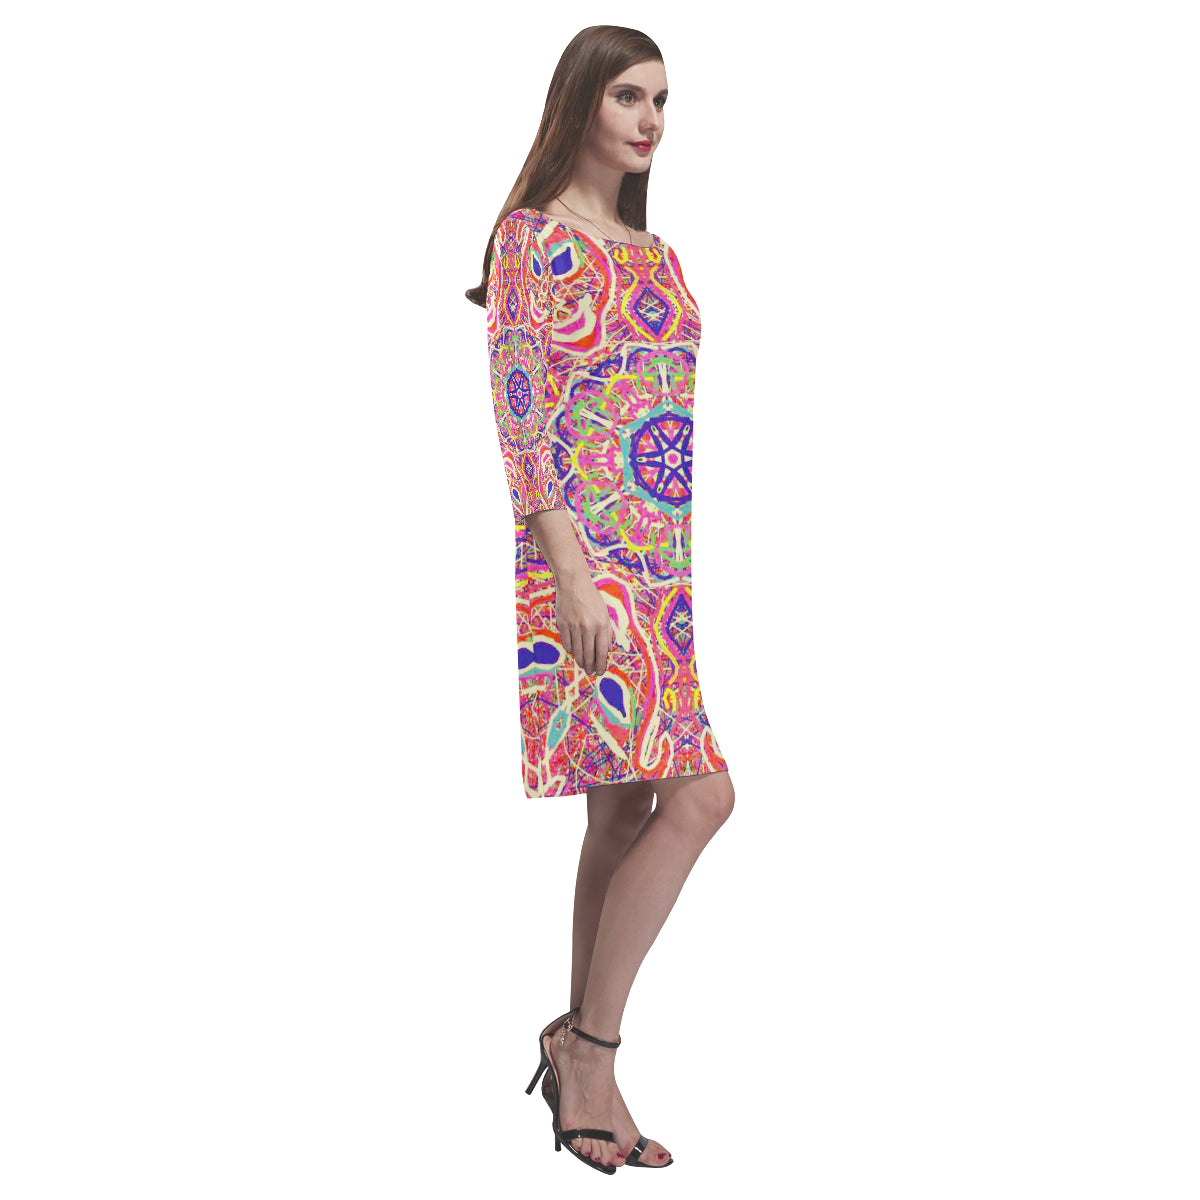 Thleudron Women's Venice Rhea Loose Round Neck Dress(Model D22) - Thleudron